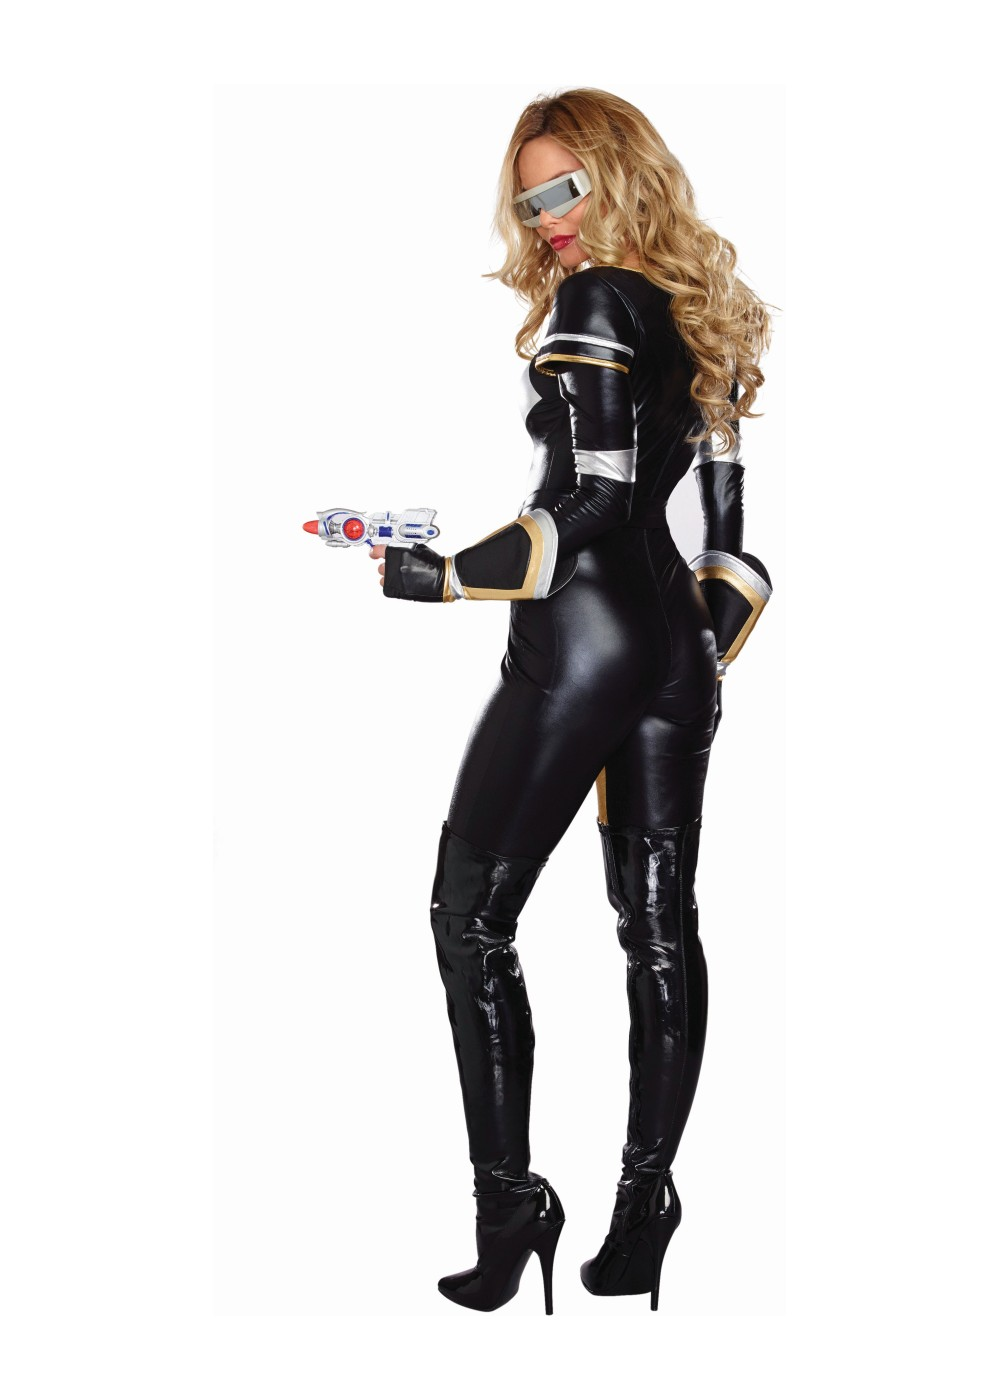 stardust warrior womens costume   superhero costumes